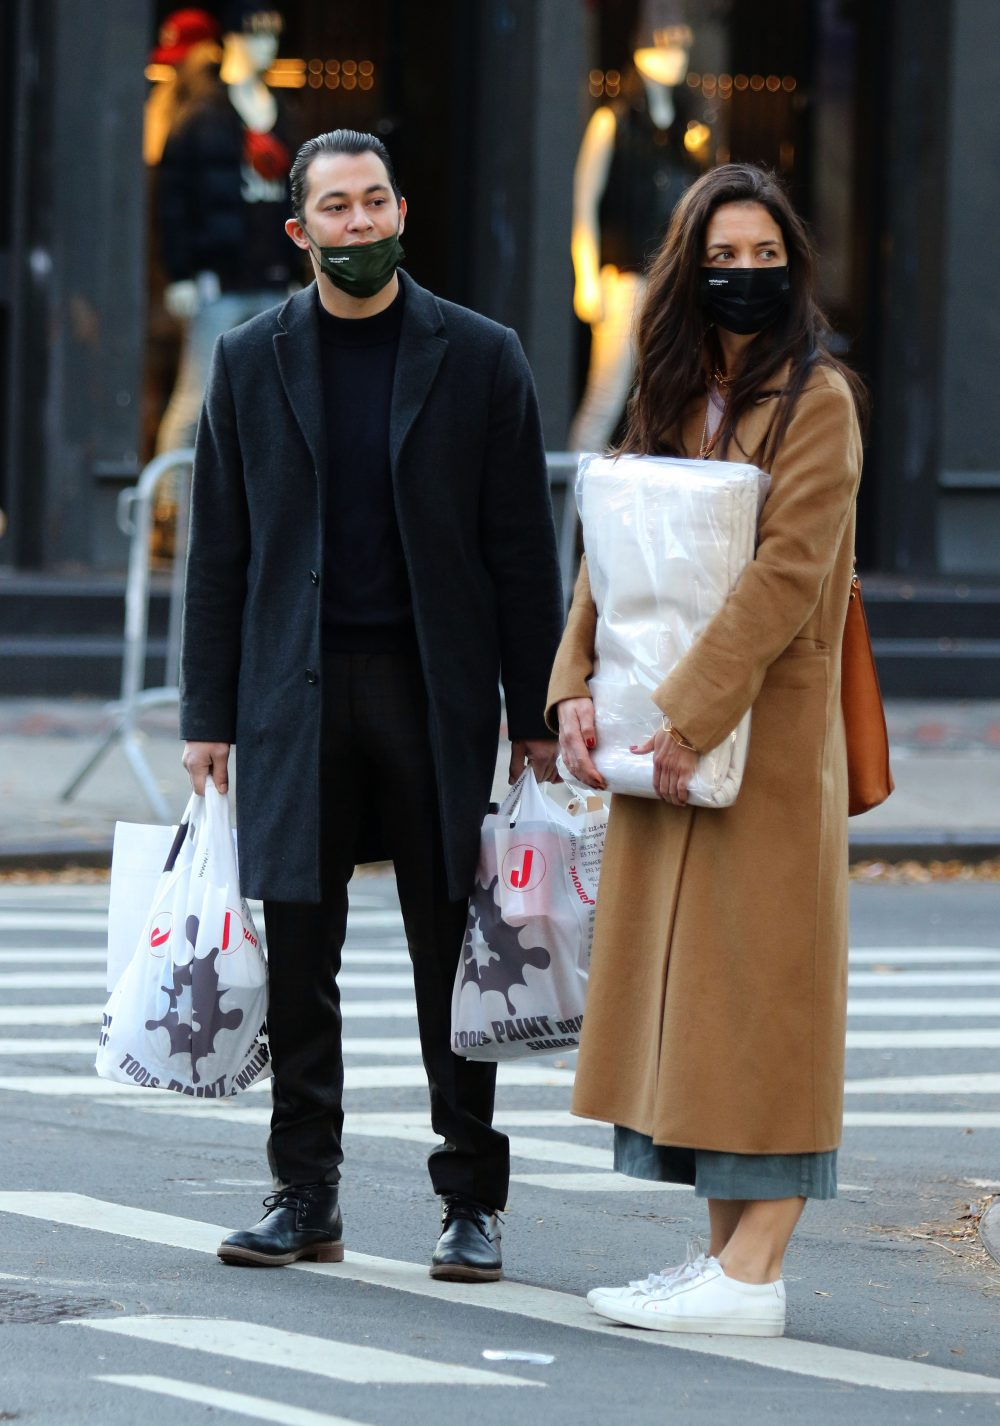 Katie Holmes and Emilio Vitolo Jr. are all smiles as they have their hands full while shopping in NYC